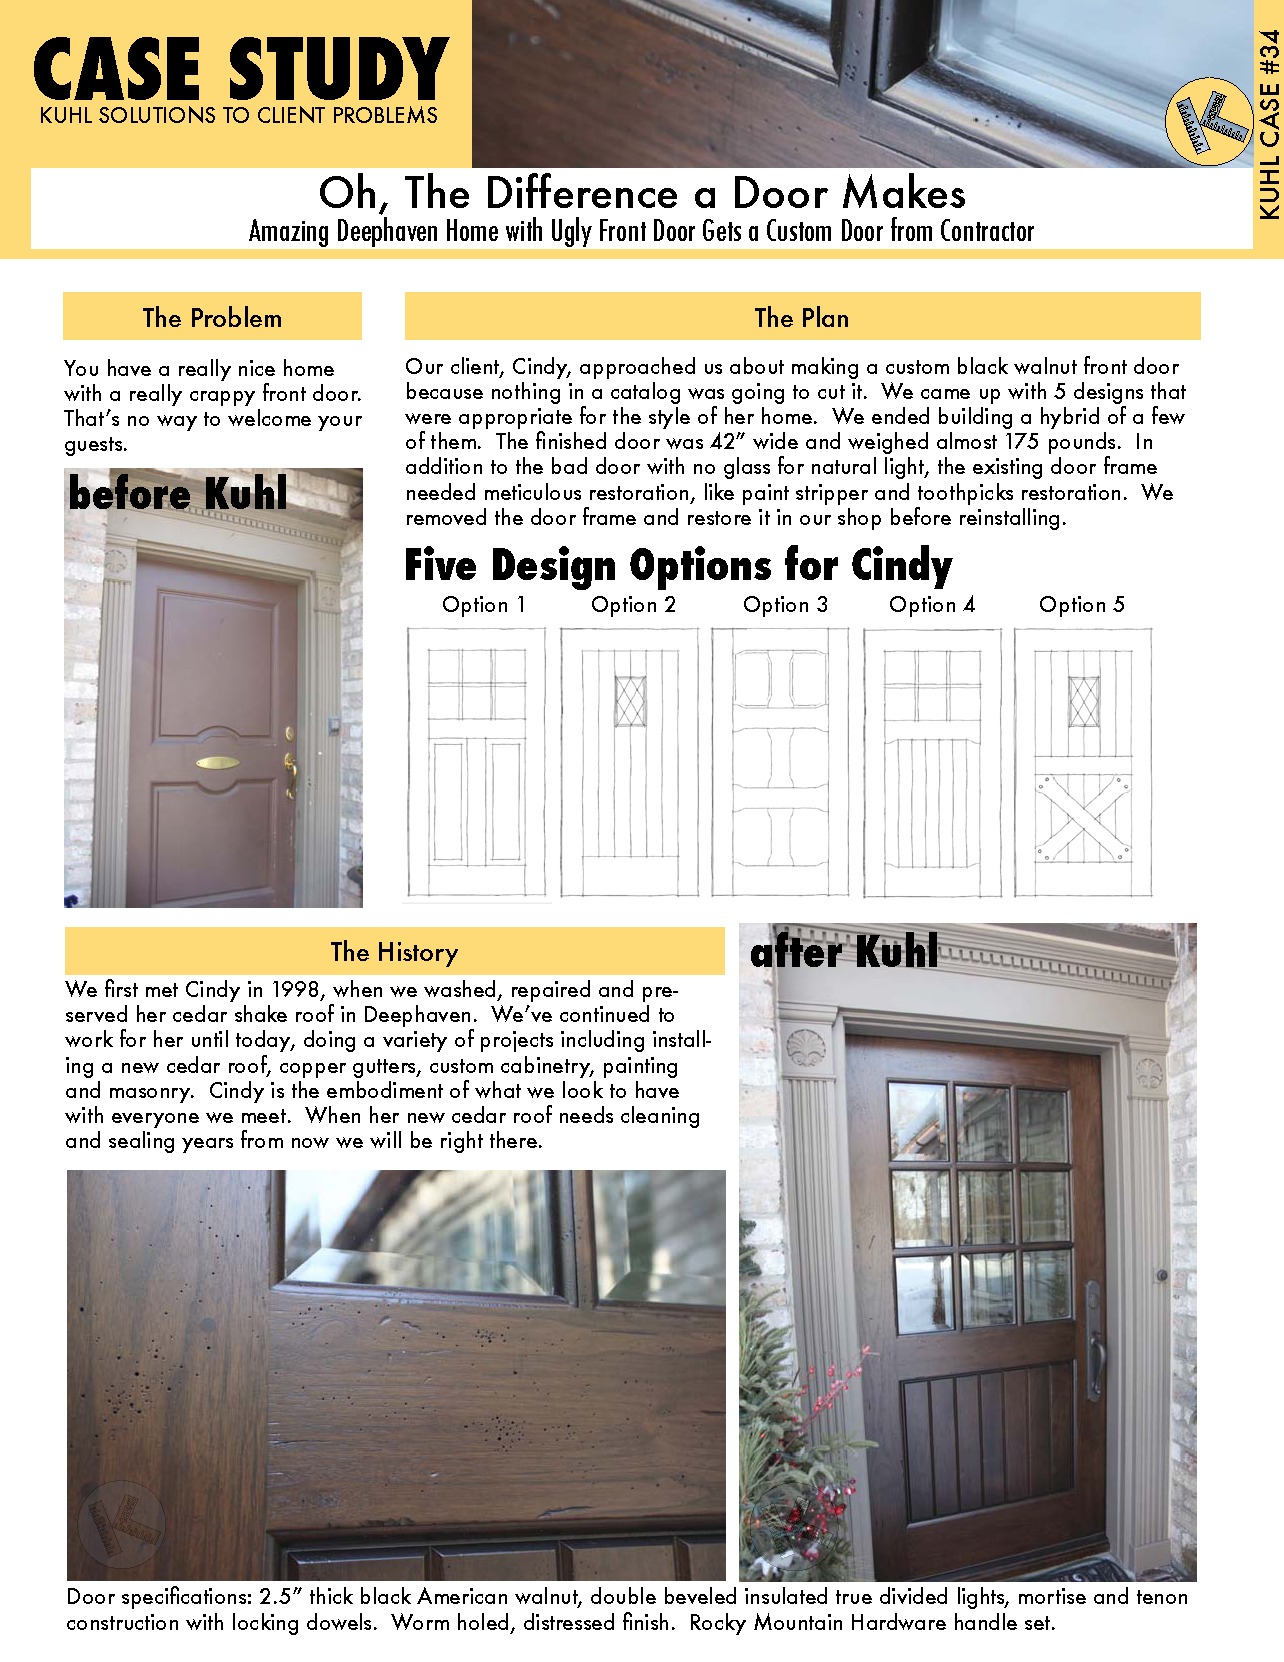 Oh, The Difference a Door Makes: Custom Door for Minneapolis Home